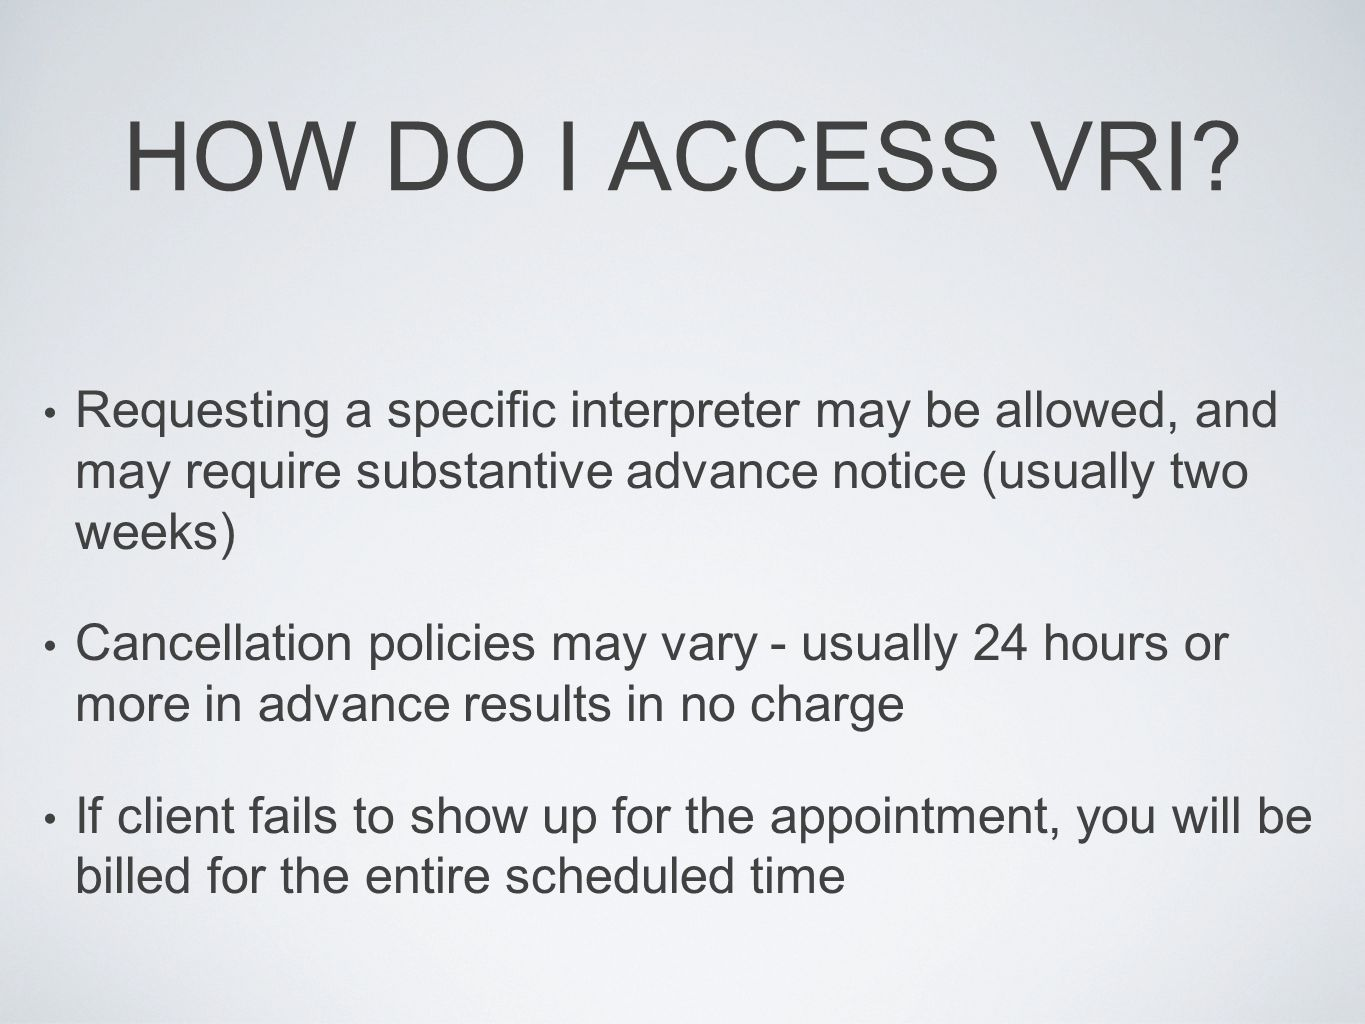 HOW DO I ACCESS VRI Requesting a specific interpreter may be allowed, and may require substantive advance notice (usually two weeks)